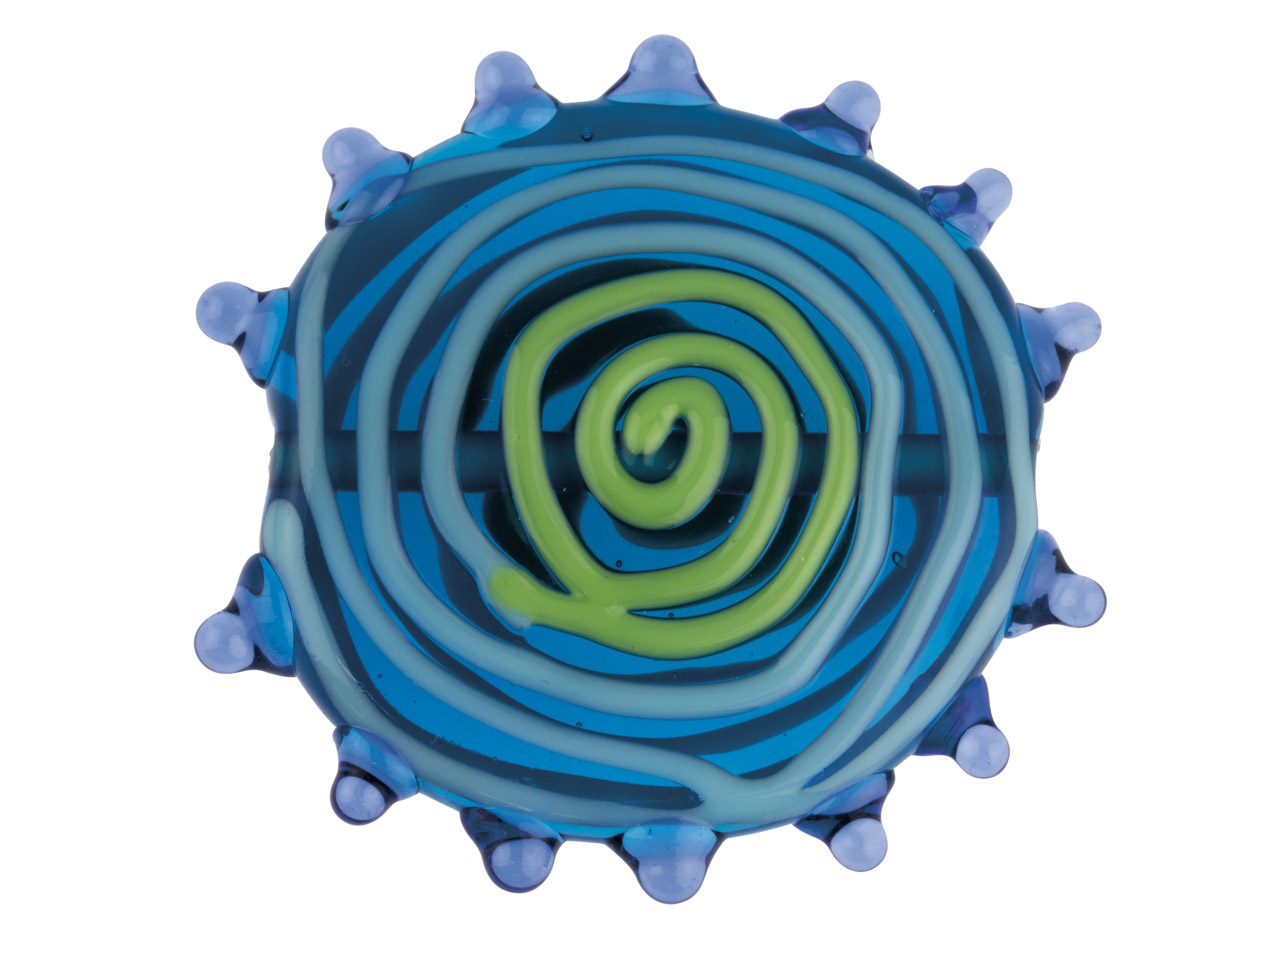 Blue Flat Disc With Swirls And     Spots European Lampwork Bead, 33mm